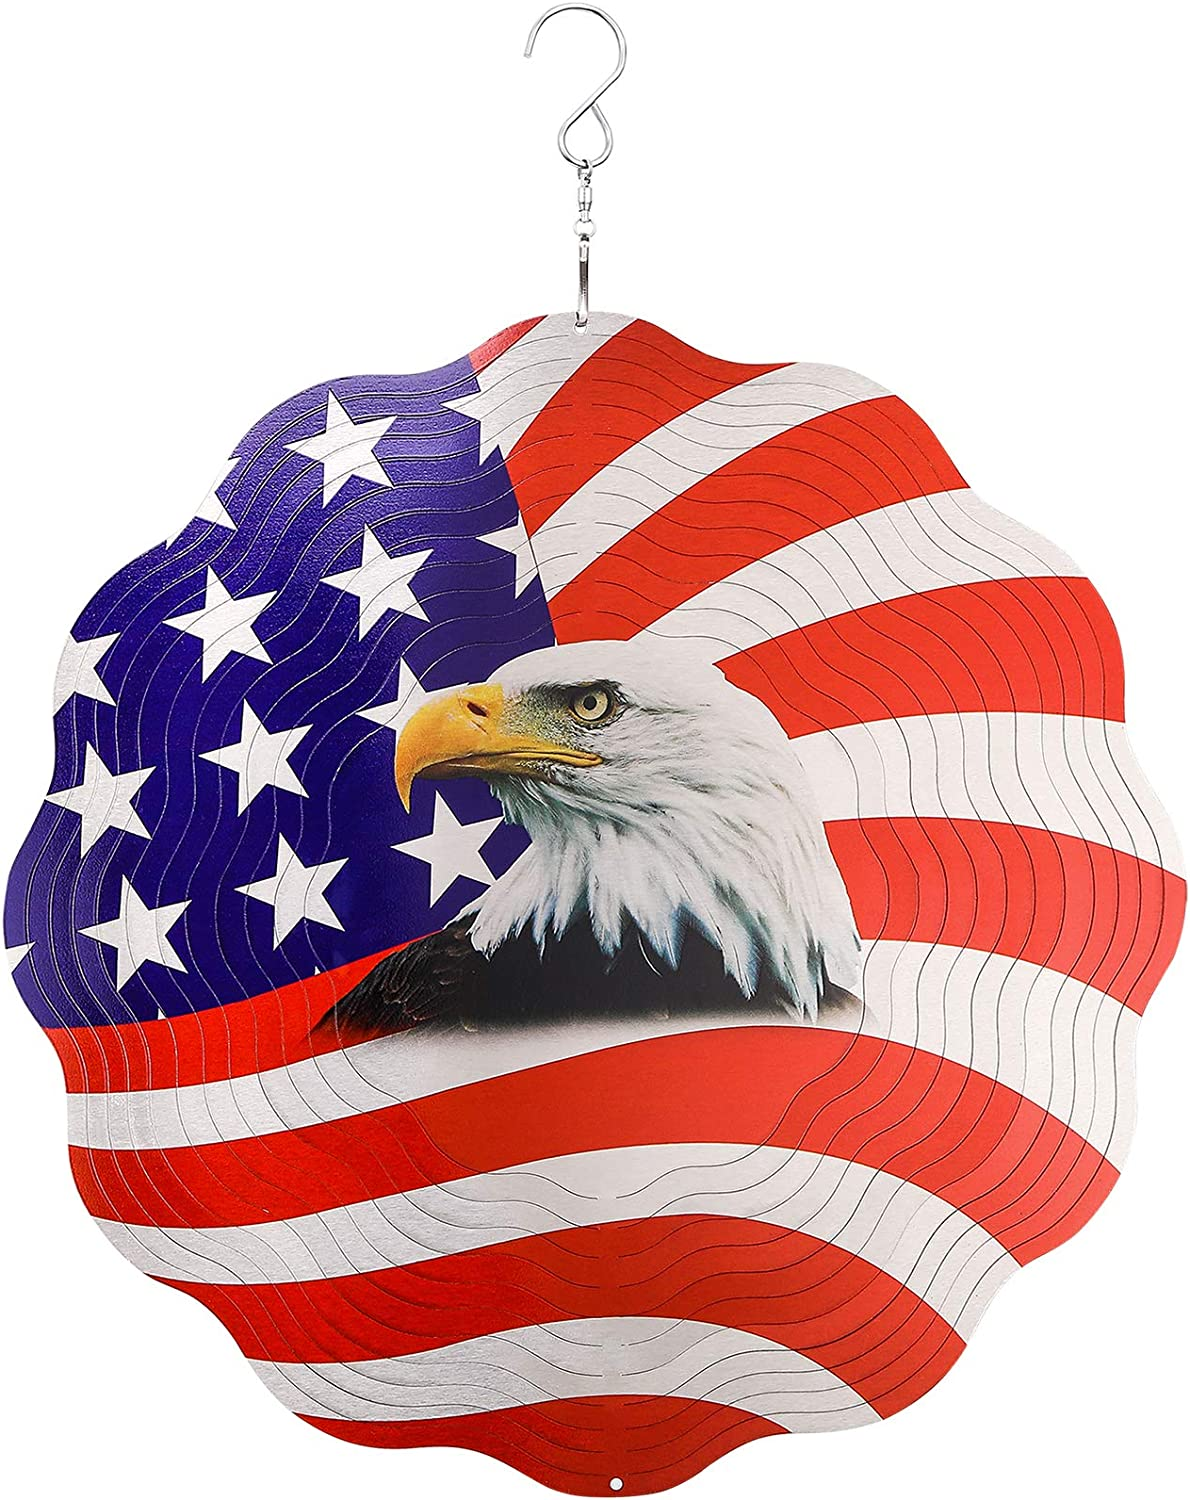 Metal Wind Spinners Outdoor Large,American Eagle Craft Spinner Hanging Patio Decor,12inch Yard Ornaments 3D Kinetic Spinner,Patriotic Flag Wind Spinner Gift,USA Wind Catchers & Spinners for Garden Art